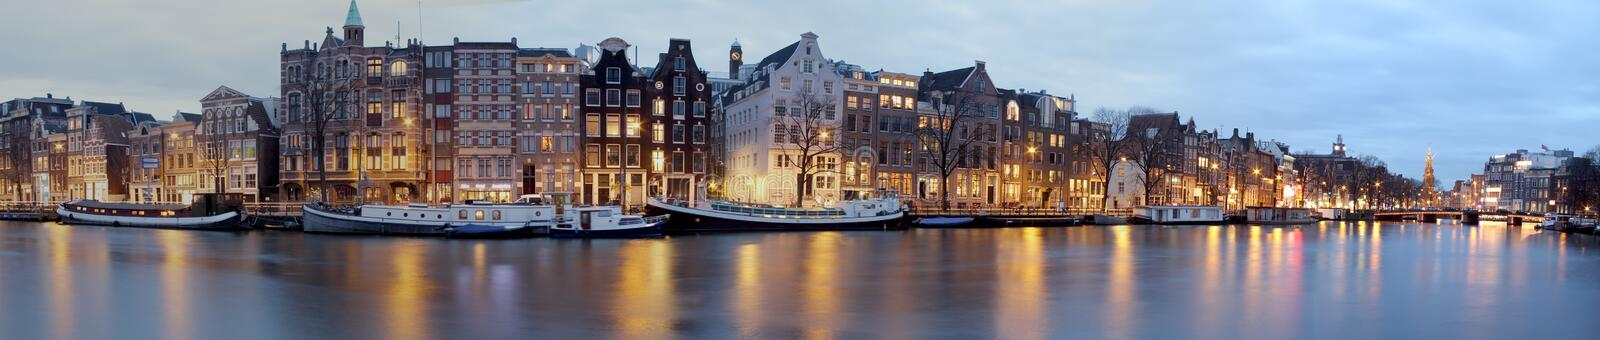 Panoramic city scenic in Amsterdam the Netherlands royalty free stock photography